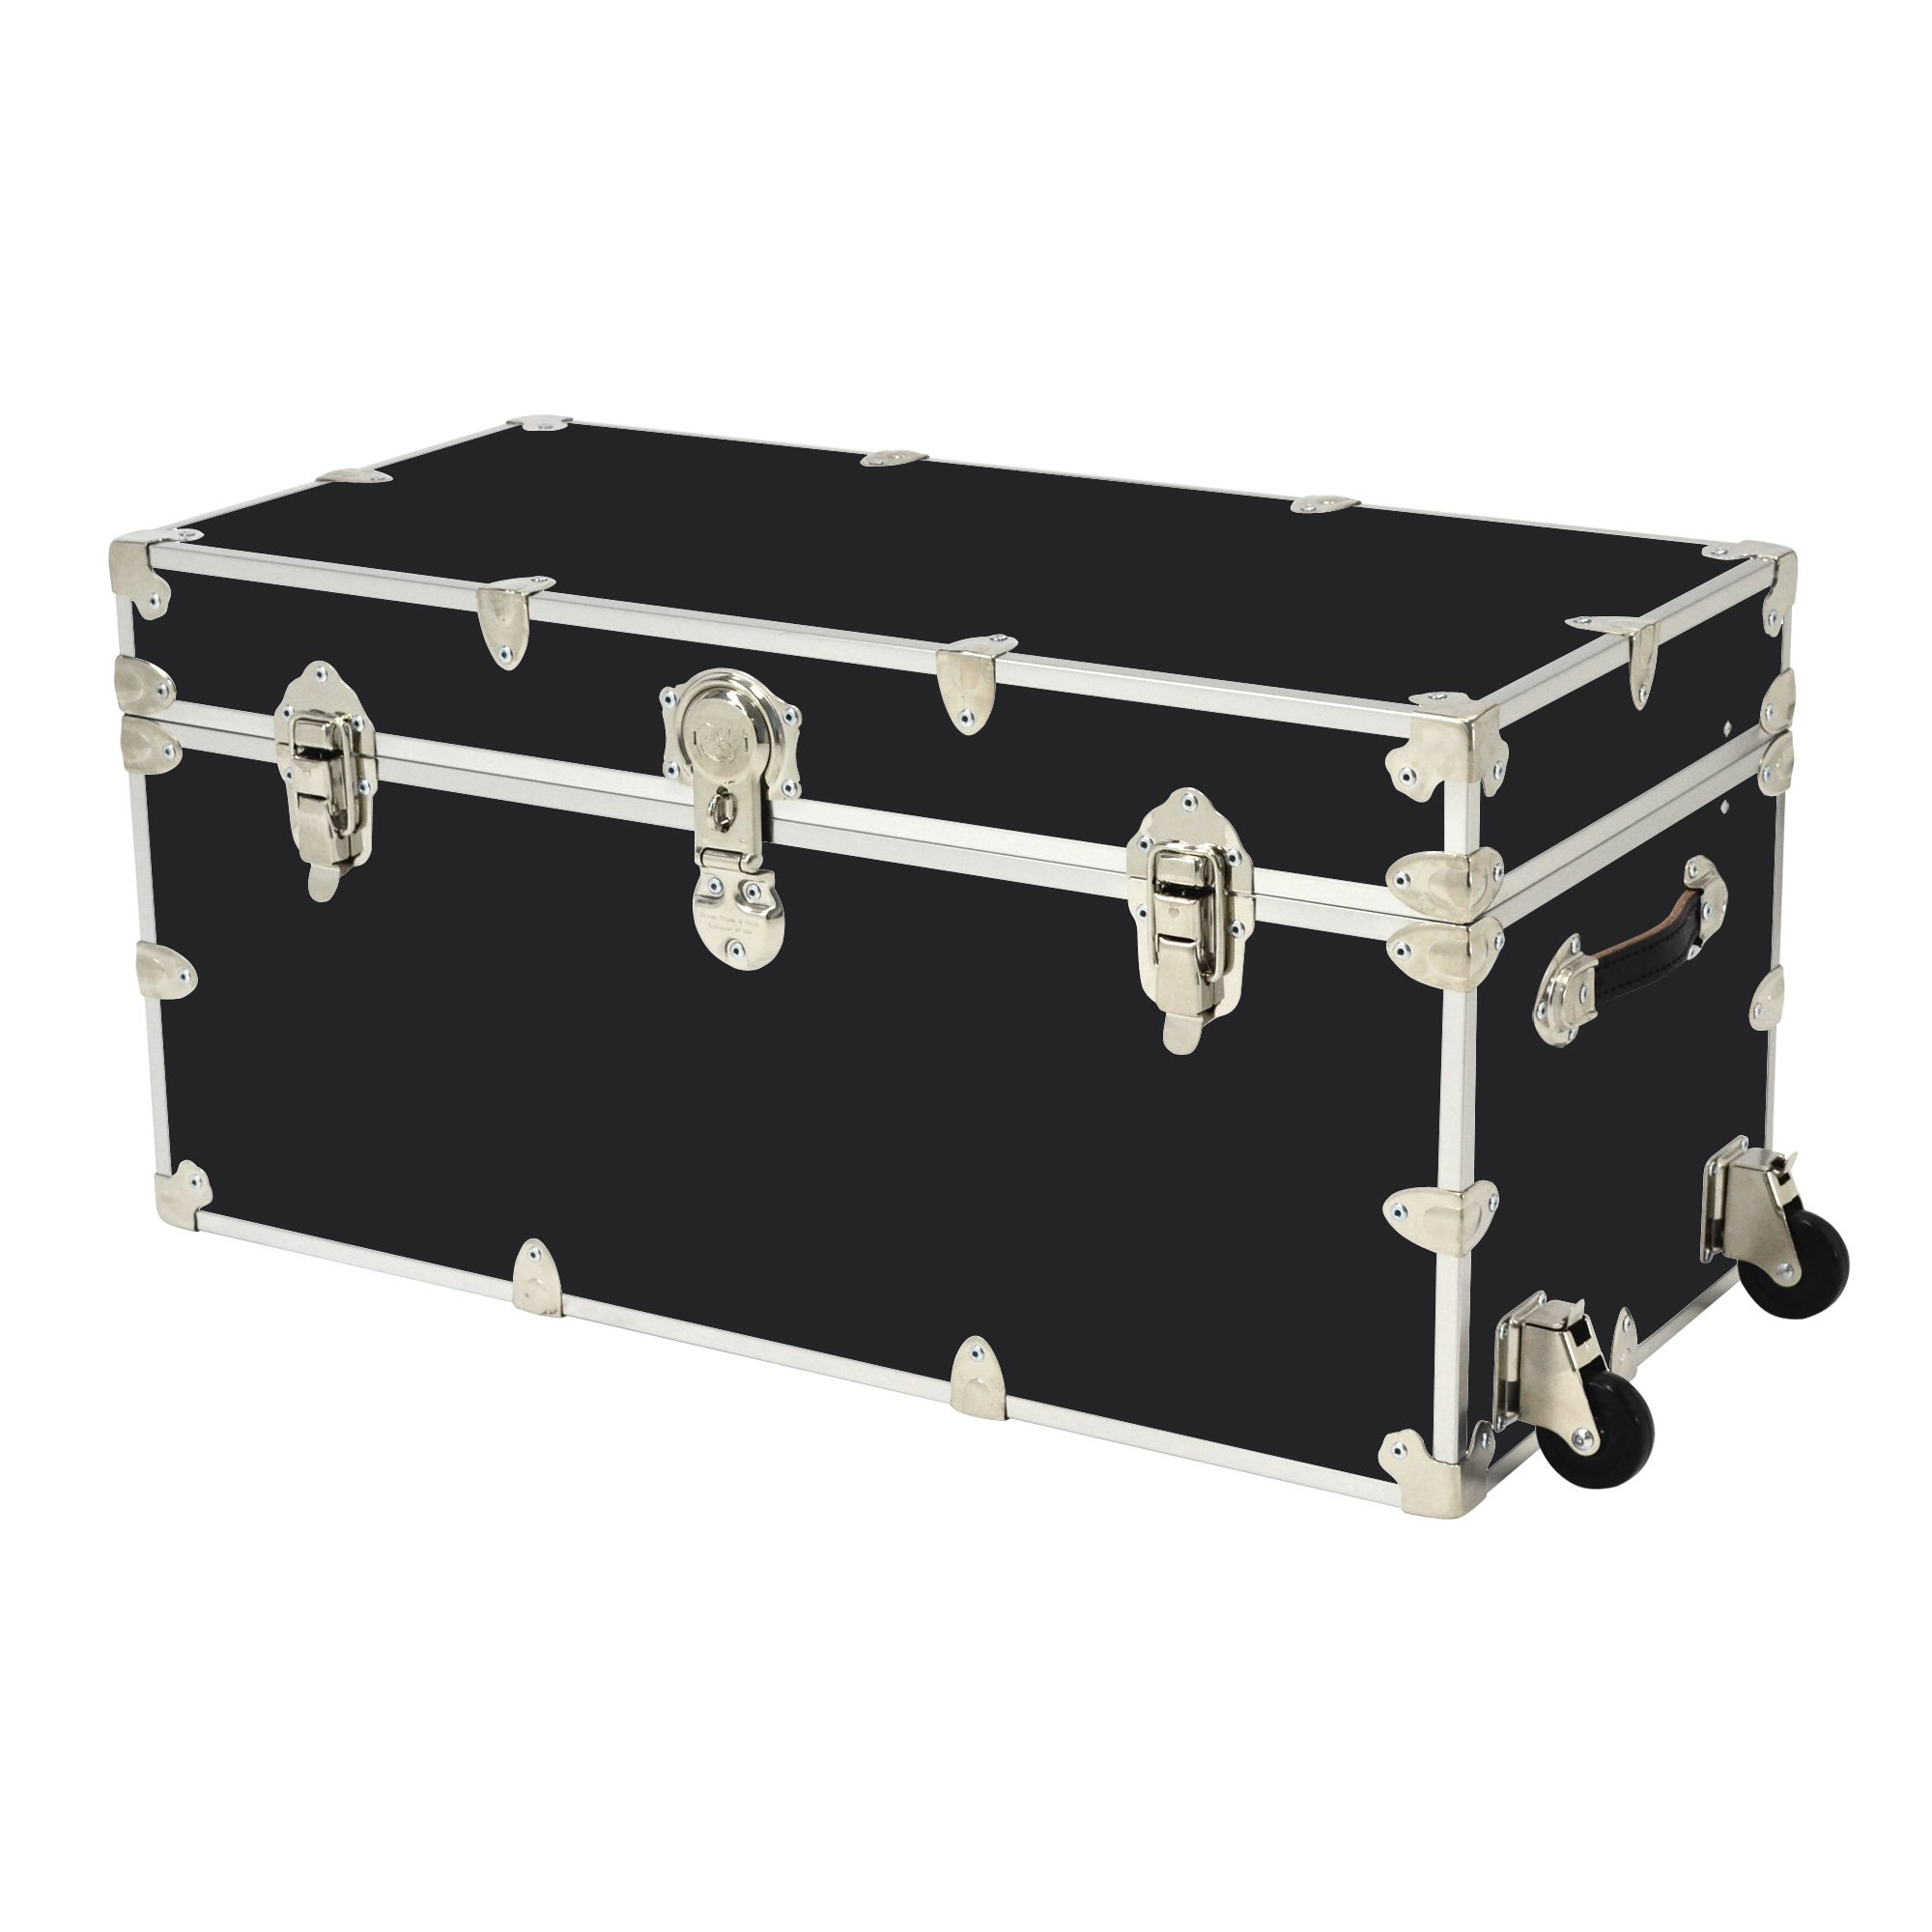 Rhino Dorm Armor Trunk with Wheels, 35'' x 17'' x 17'' by Rhino Trunk and Case